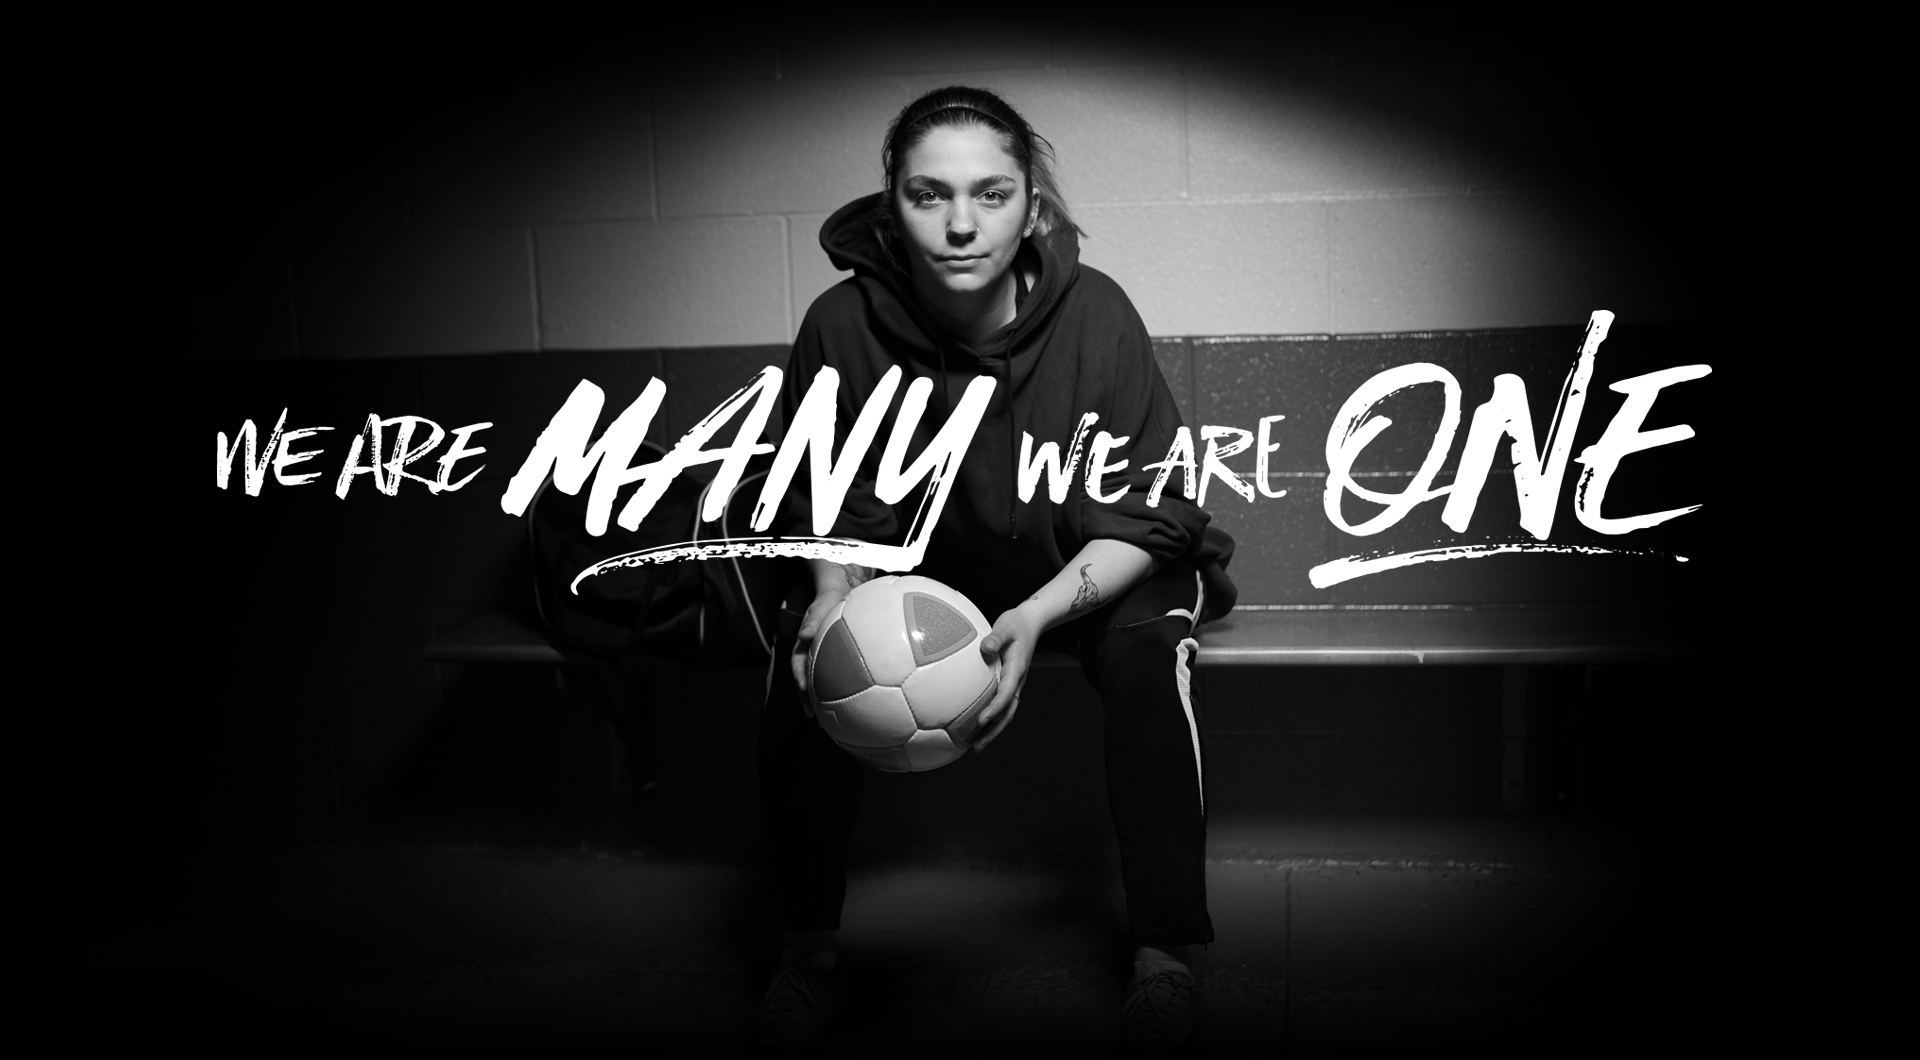 We are many. We are one.